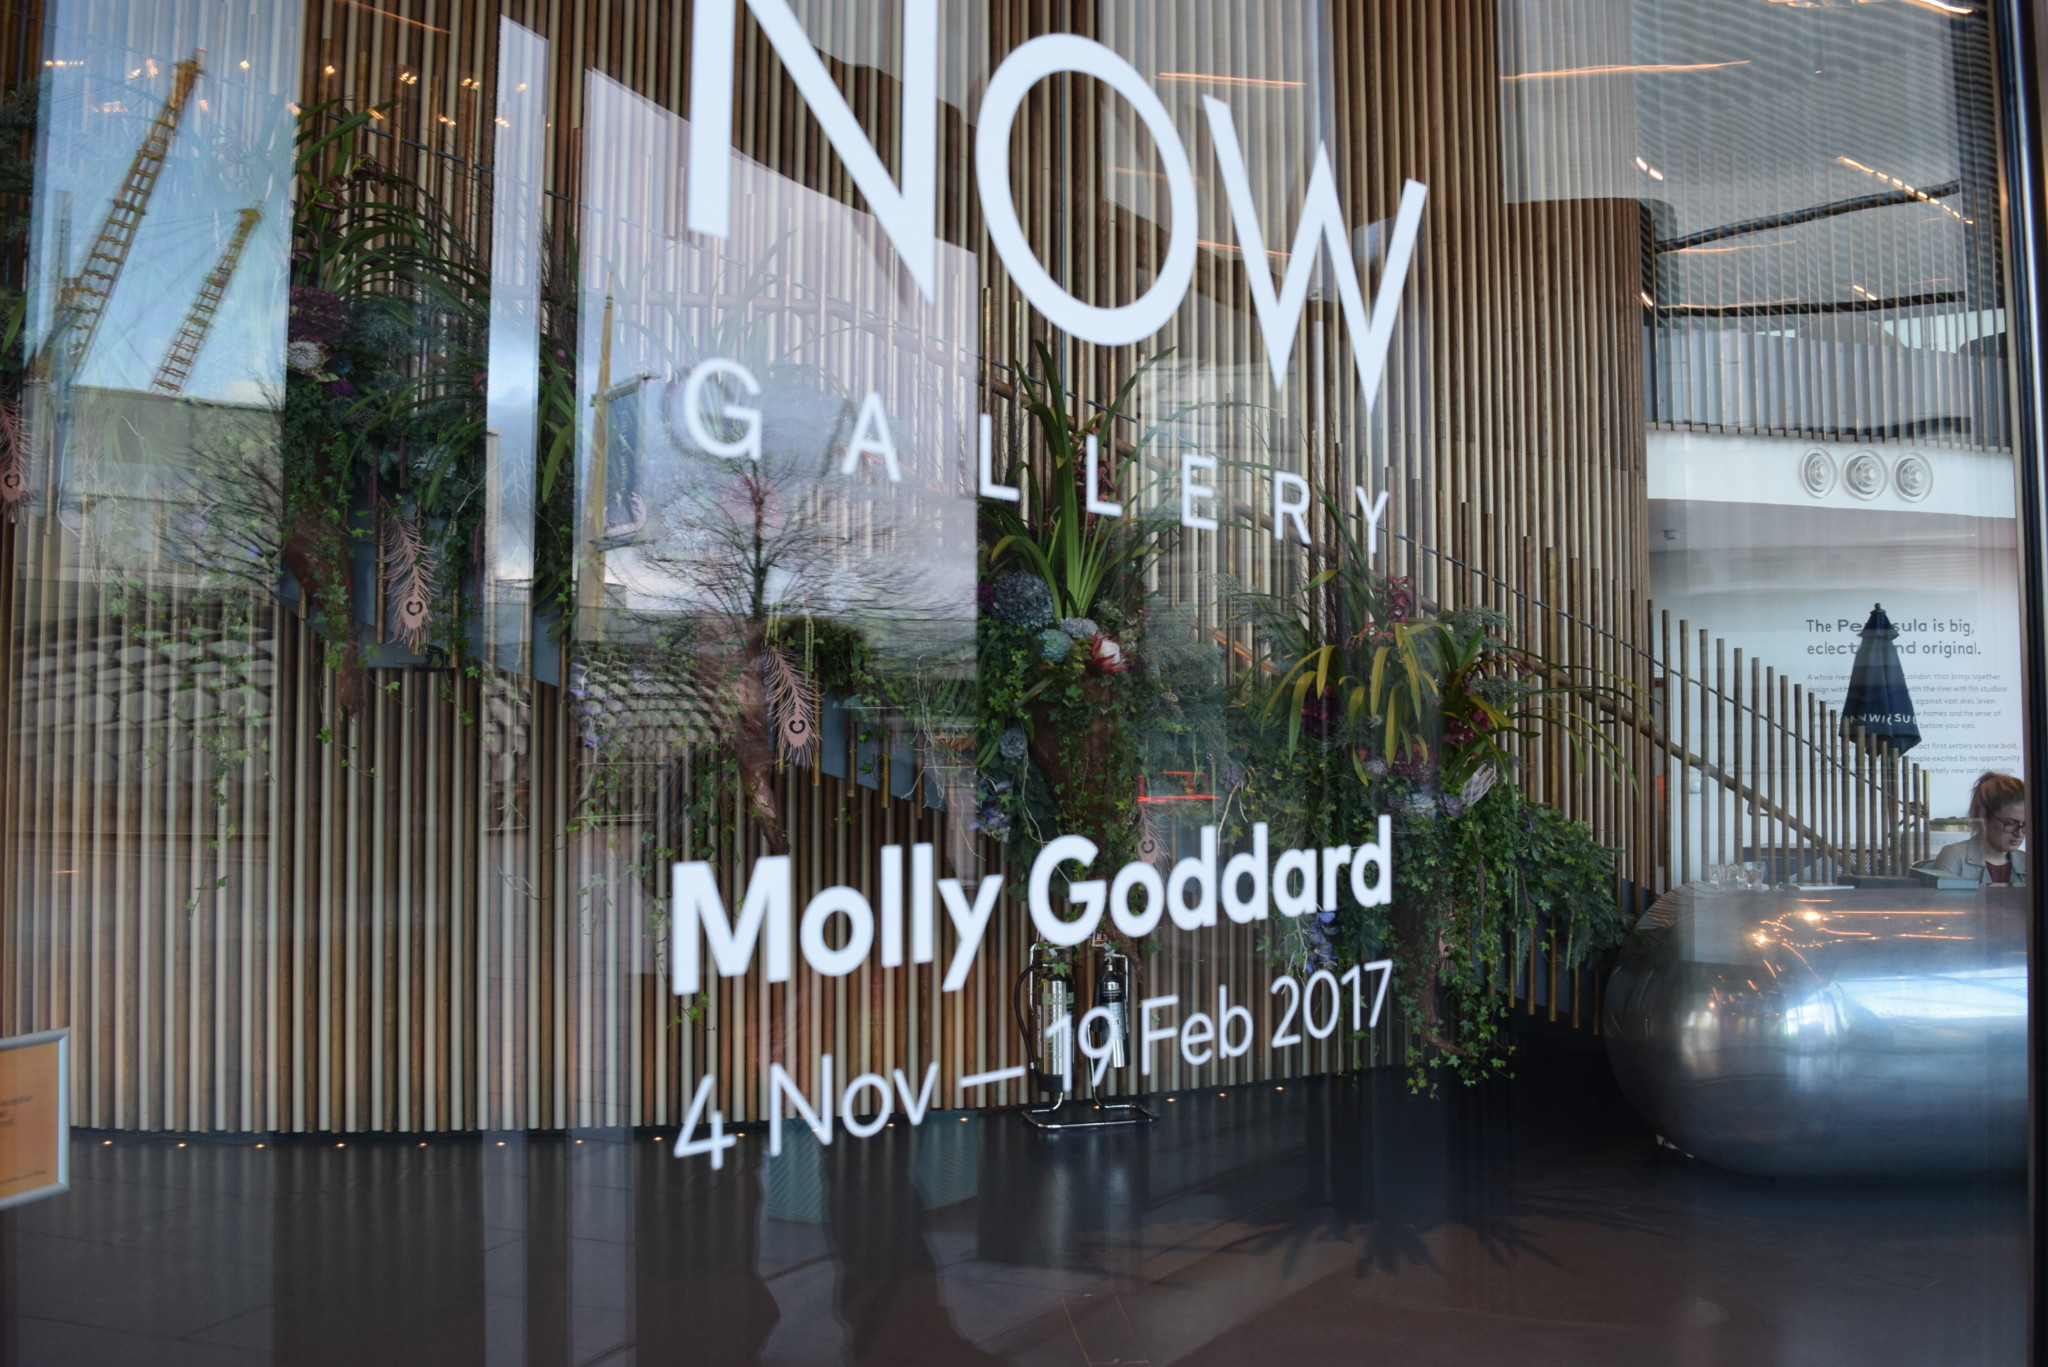 Molly Goddard at Now Gallery